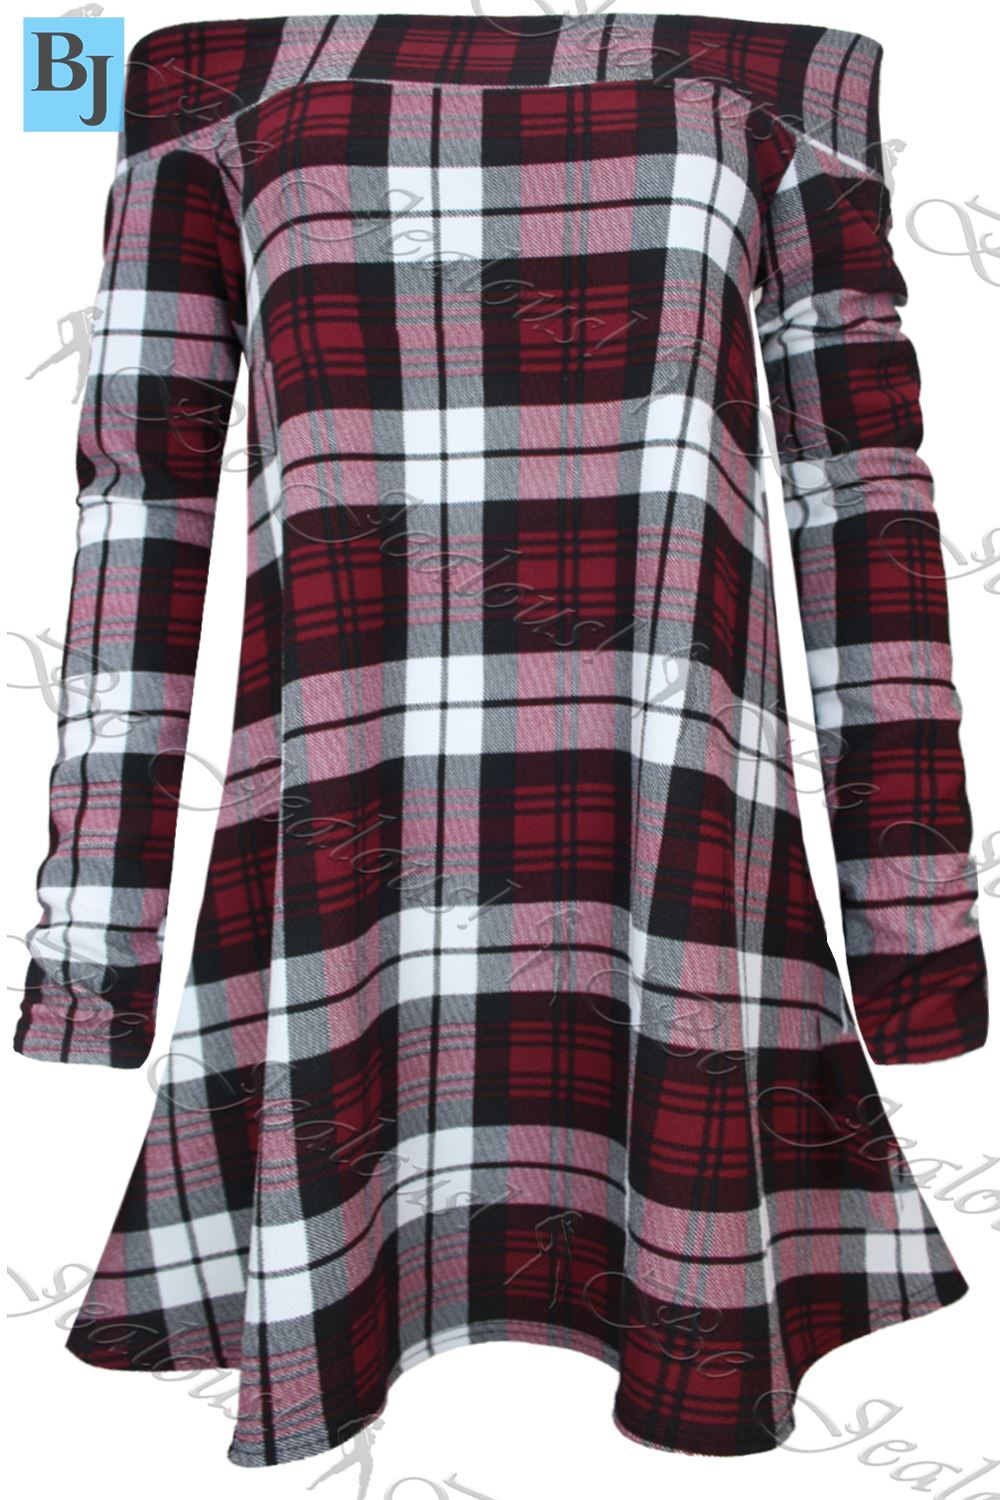 Women's Tartan Plaid Clothing including the Classic Kilted Skirt, Formal Hostess Skirt and Mini Skirt Kilt, and the Tartan Plaid Cape, Stole, Serape, Shawl and Sash. All available in almost Scottish Clan, Irish or Canadian Plaid Tartans made by Lochcarron of Scotland.